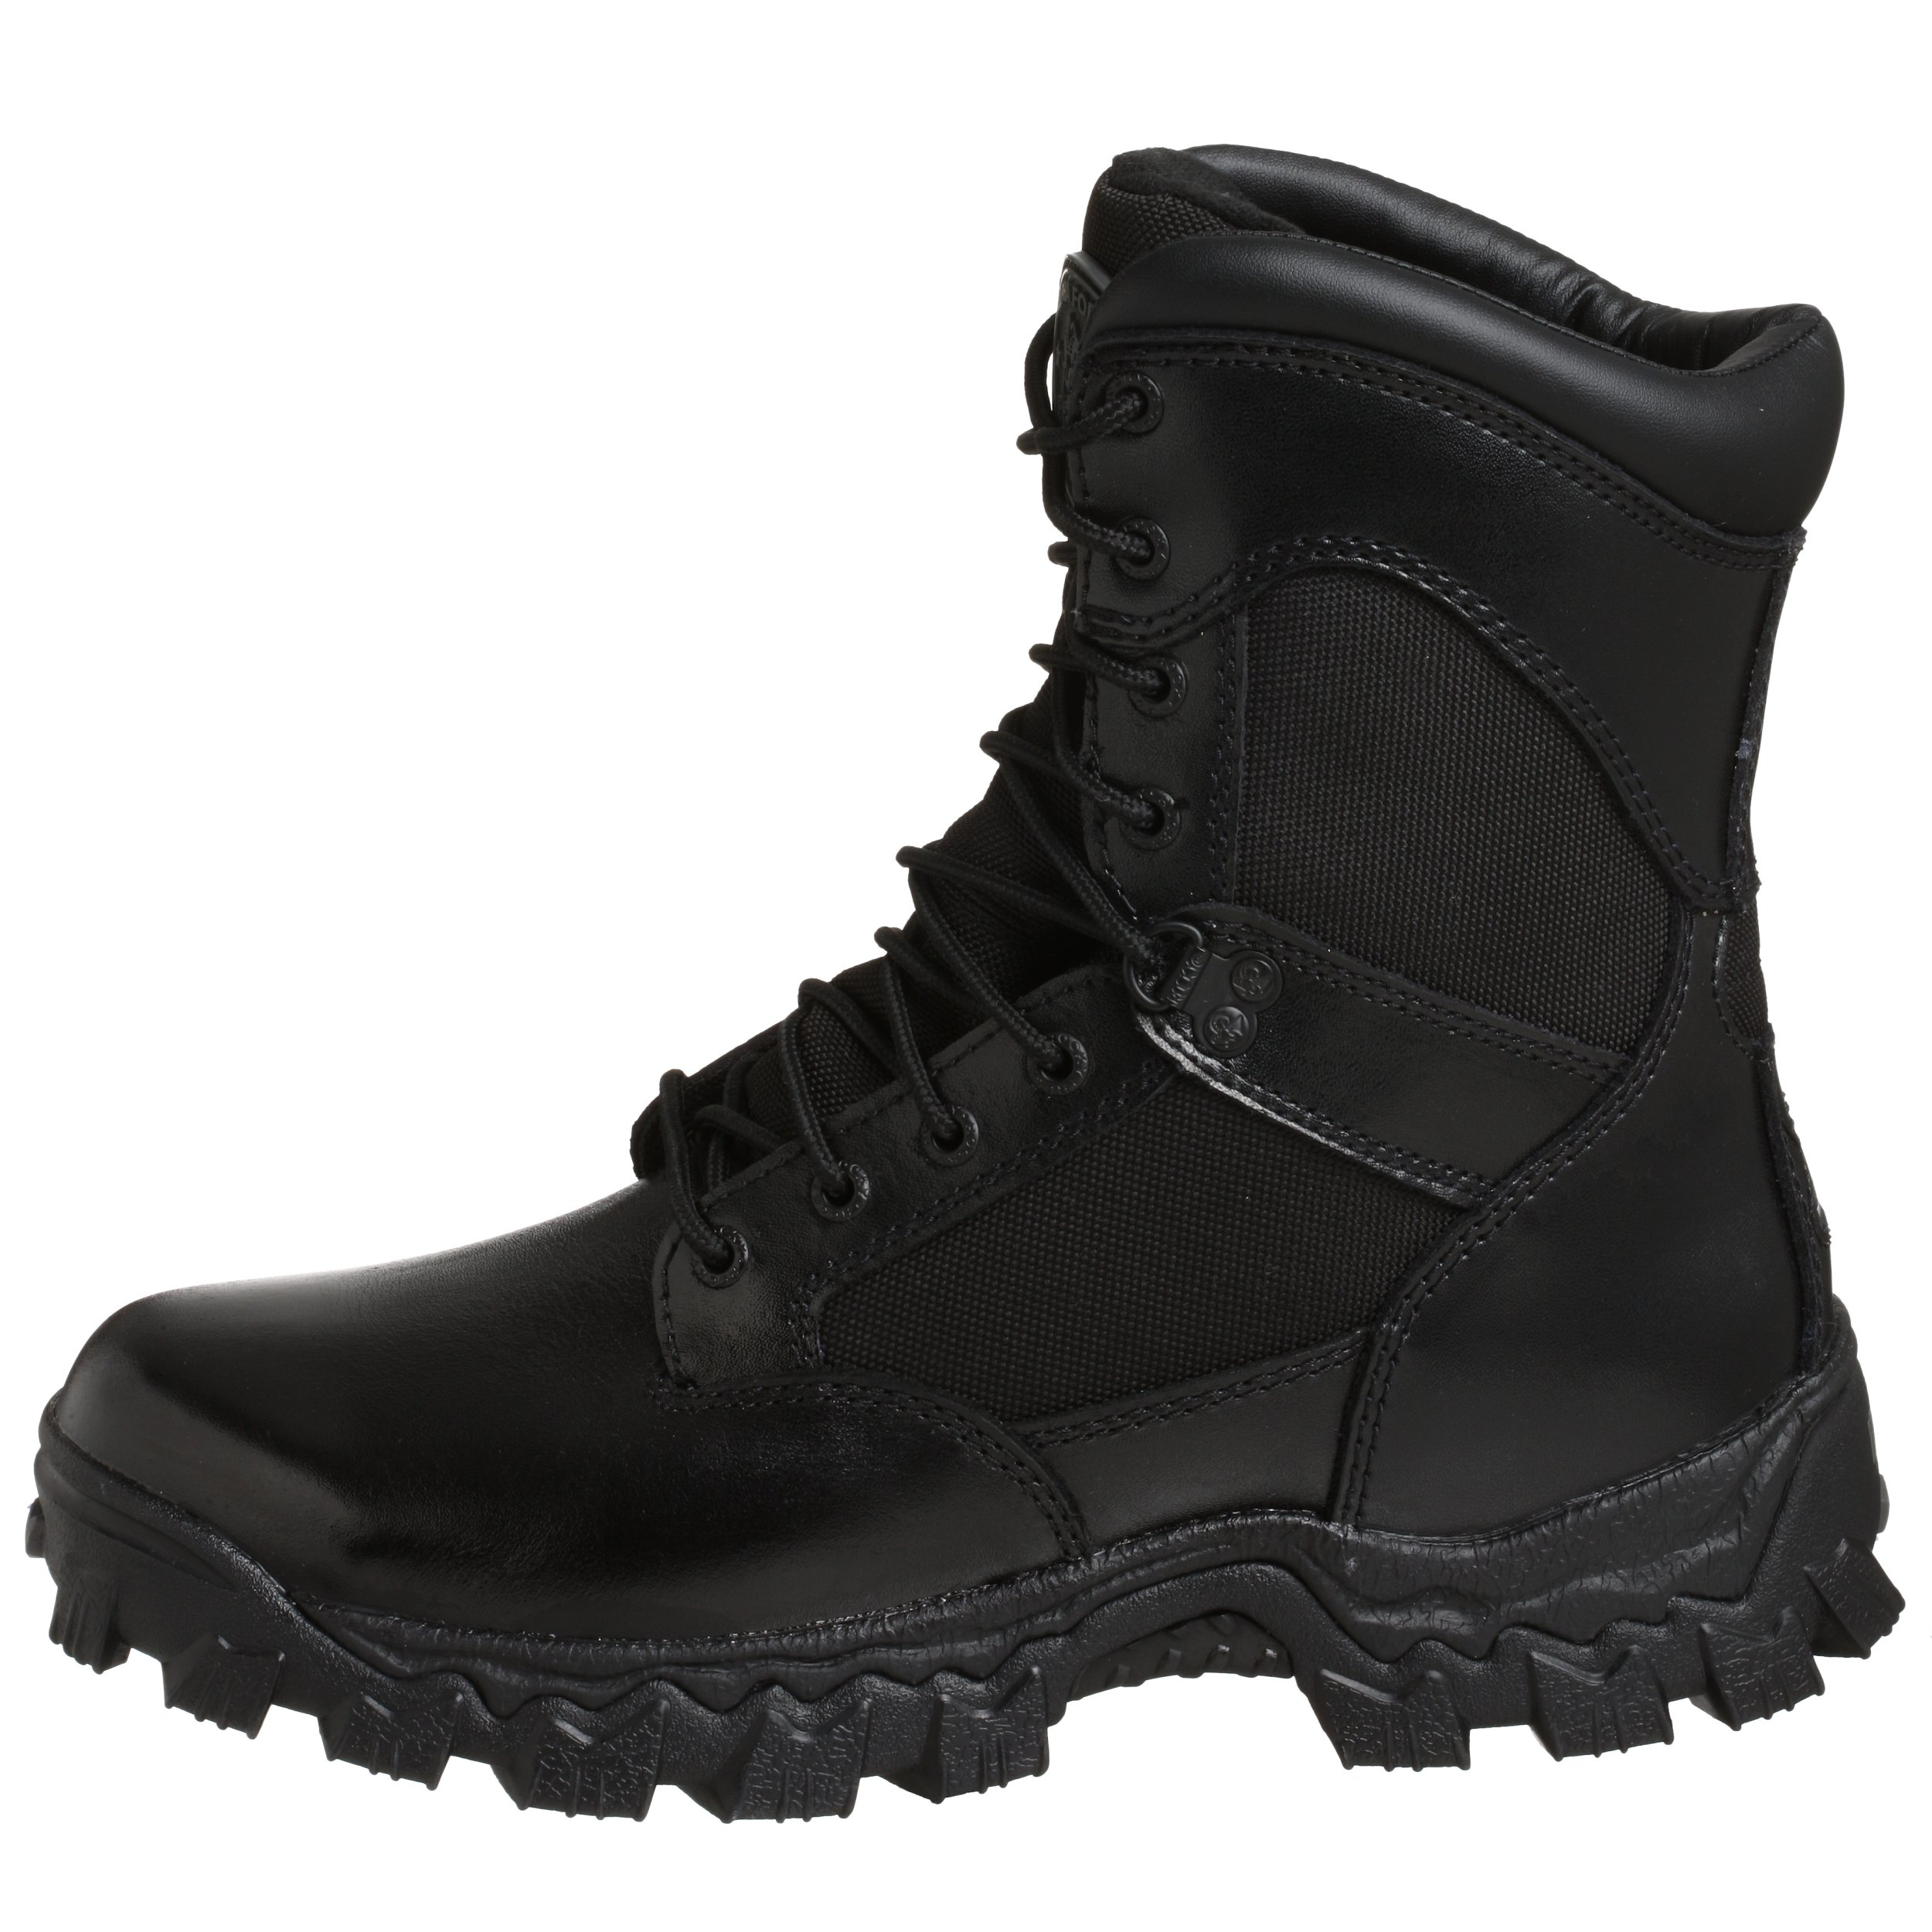 Rocky Duty Men's Alpha Force 8'' Swat Boot,Black,11.5 M by Rocky (Image #5)